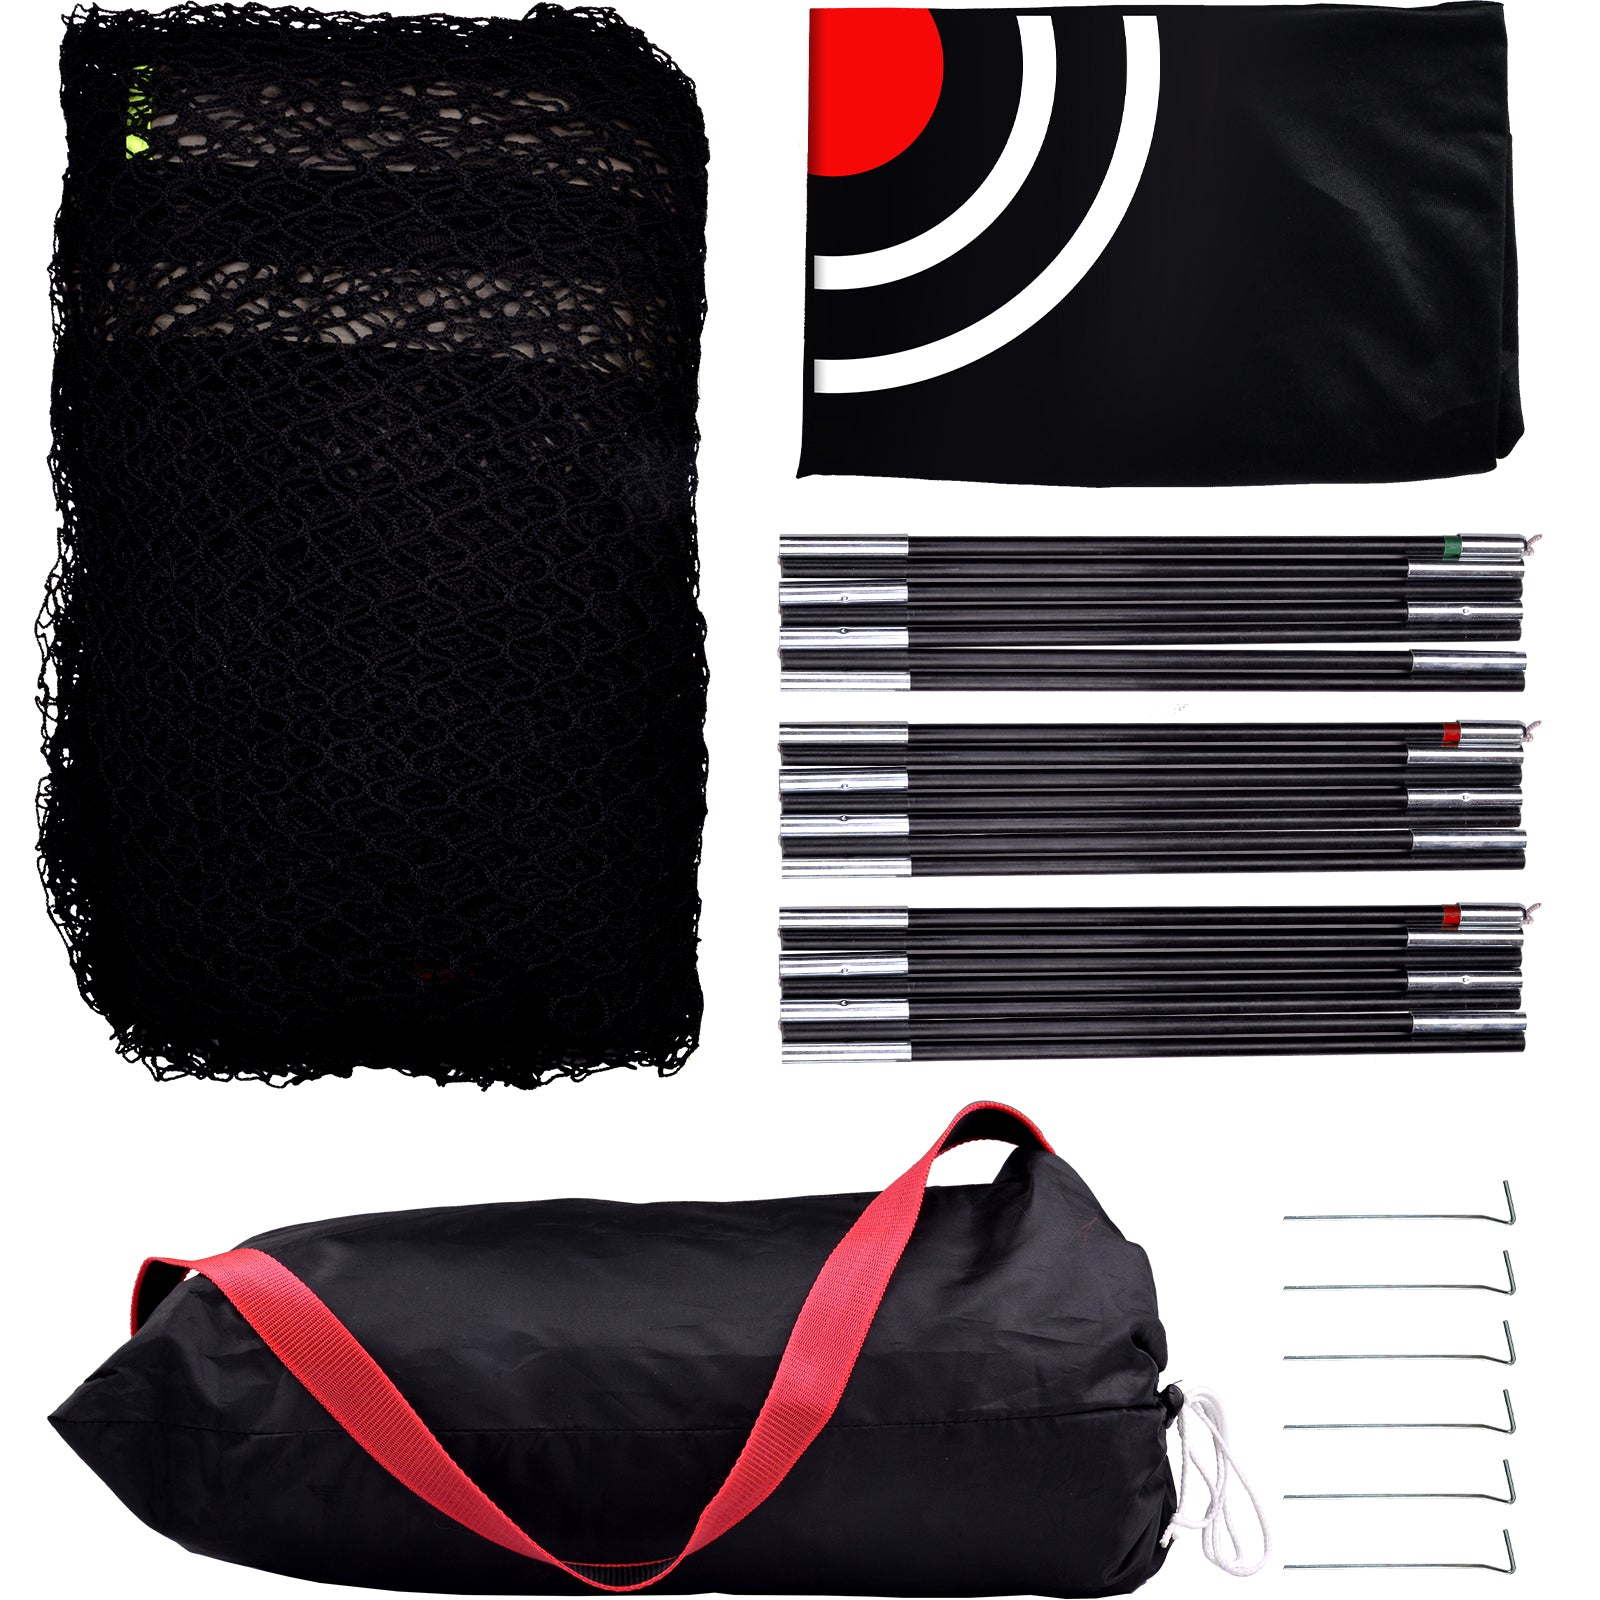 Galileo Sports Golf Nets for Indoor Use Golf Practice Net 8'(L)X 7'(H)X 7'(D) Golf Hitting Nets for Backyard Driving Range with Target and Carry Bag| Best Golf Net 2021